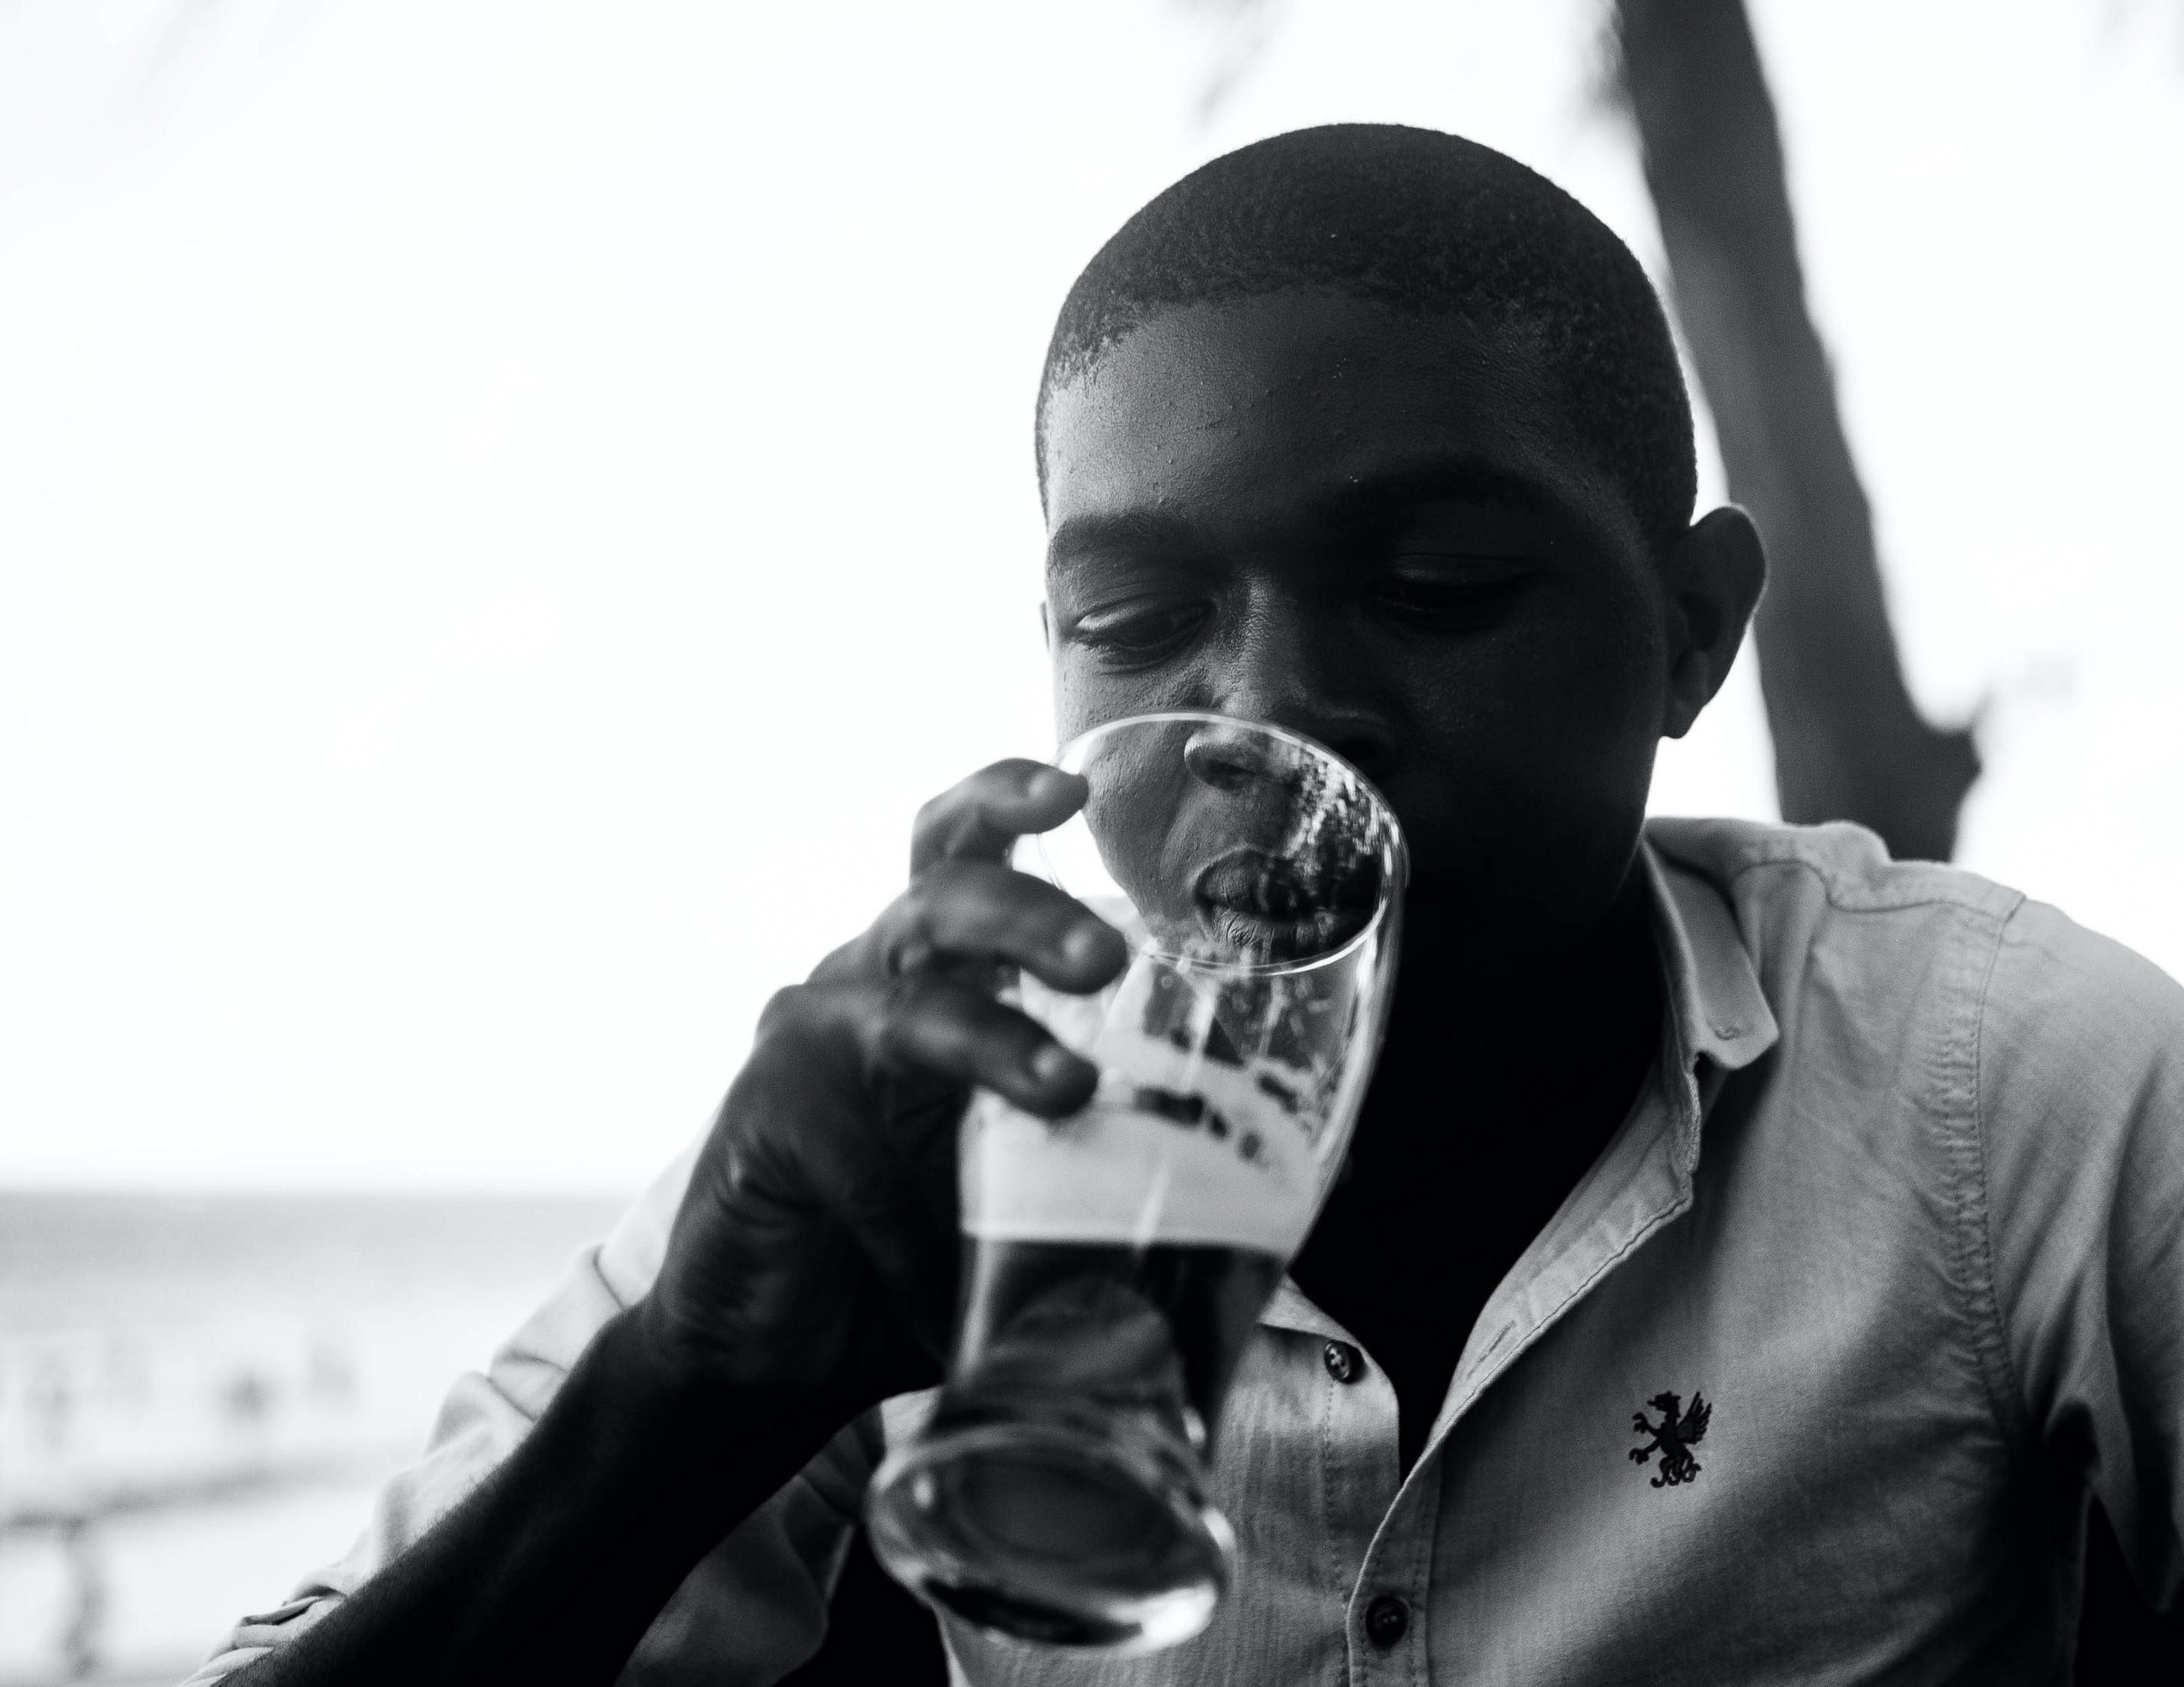 a man looks down into an almost empty glass of beer